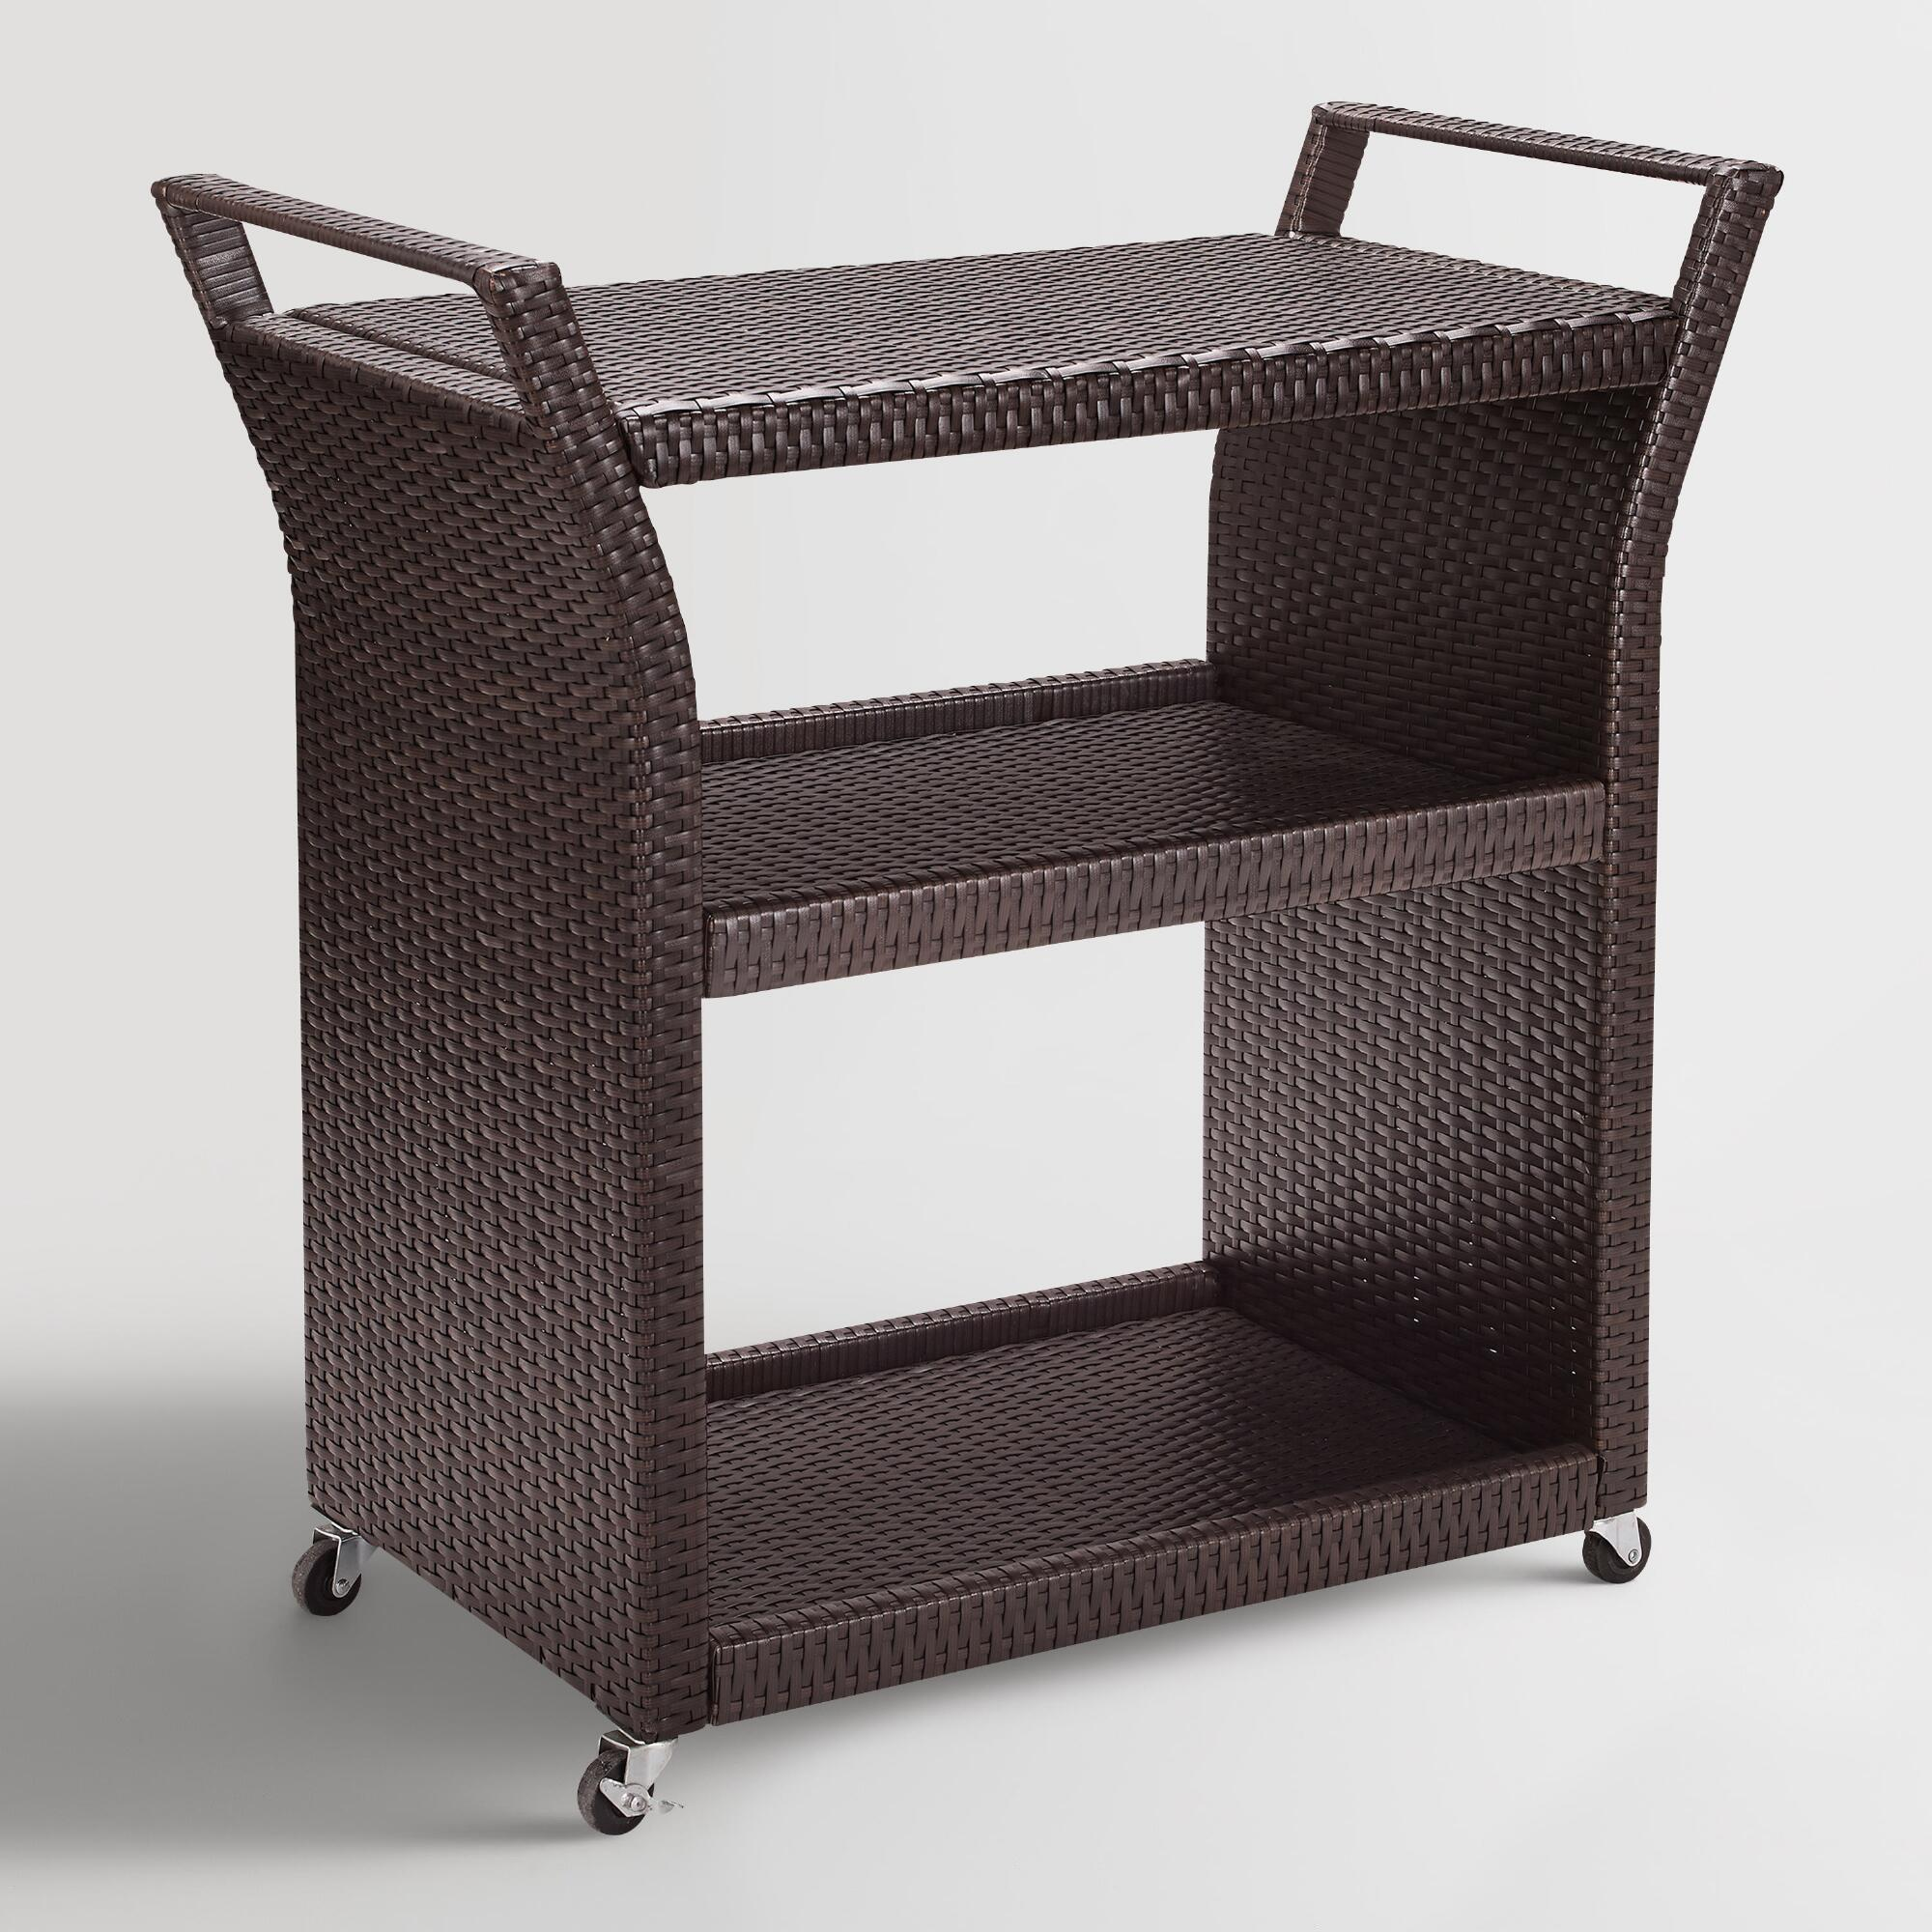 Espresso All Weather Wicker Pinamar Outdoor Patio Rolling Bar Cart: Brown - Resin by World Market